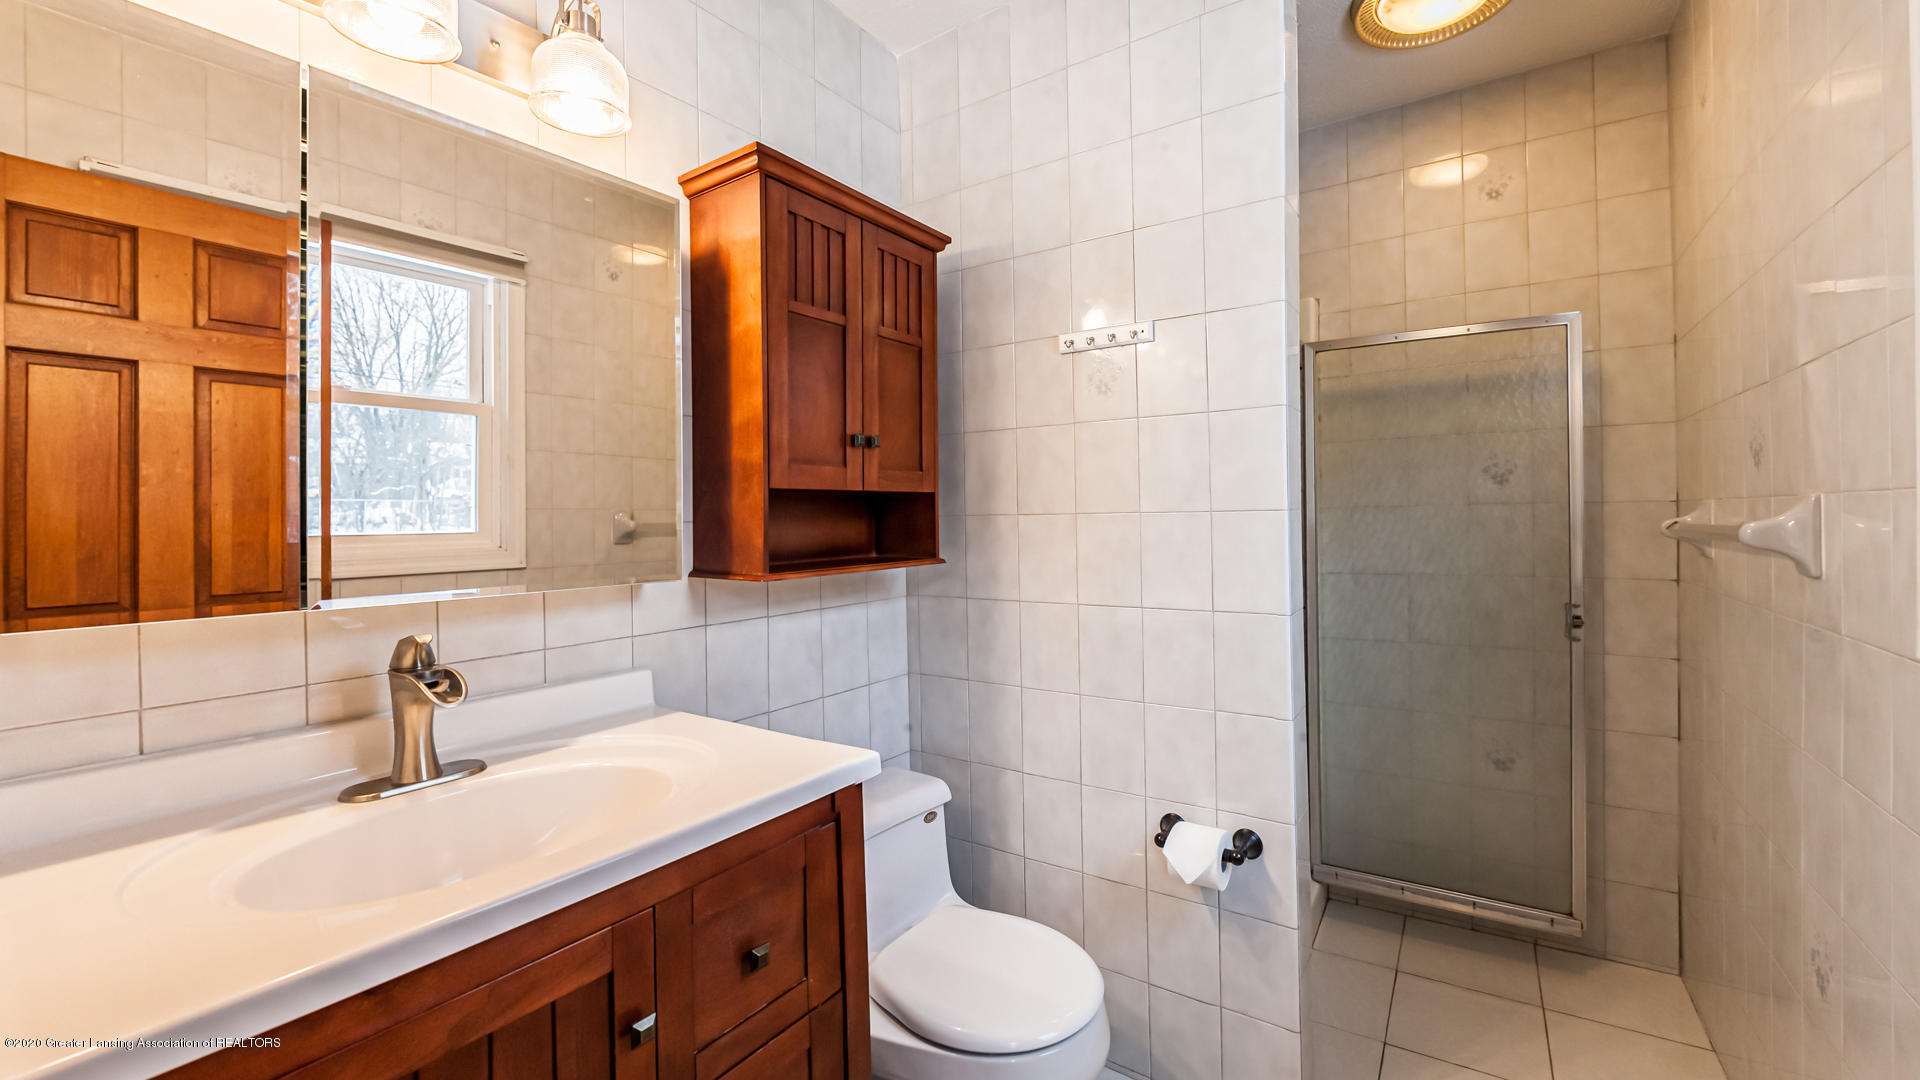 1102 Fairway Ln - Bathroom - 20